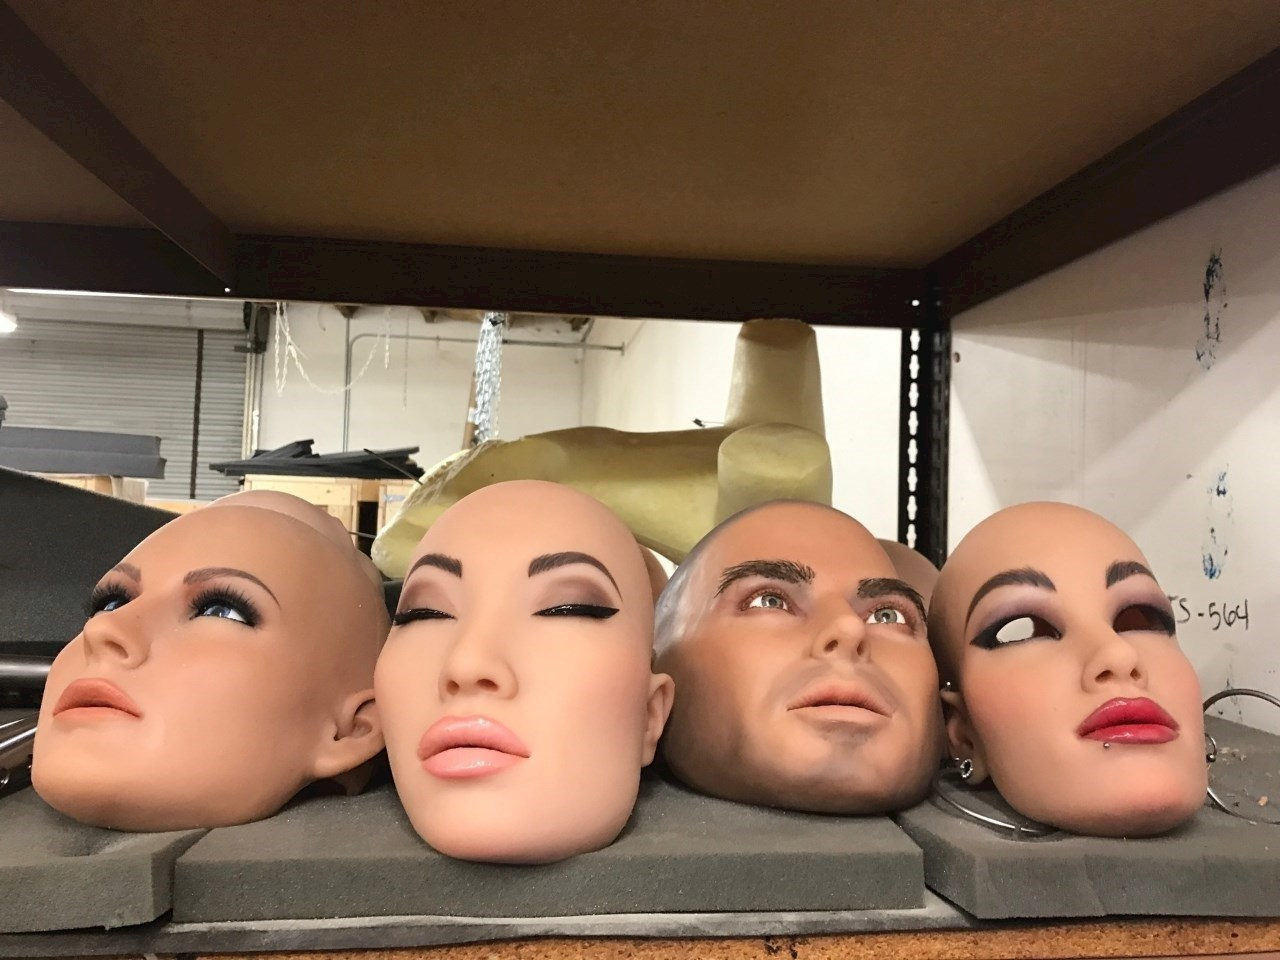 There are all kinds of faces you can choose from for your life-like doll